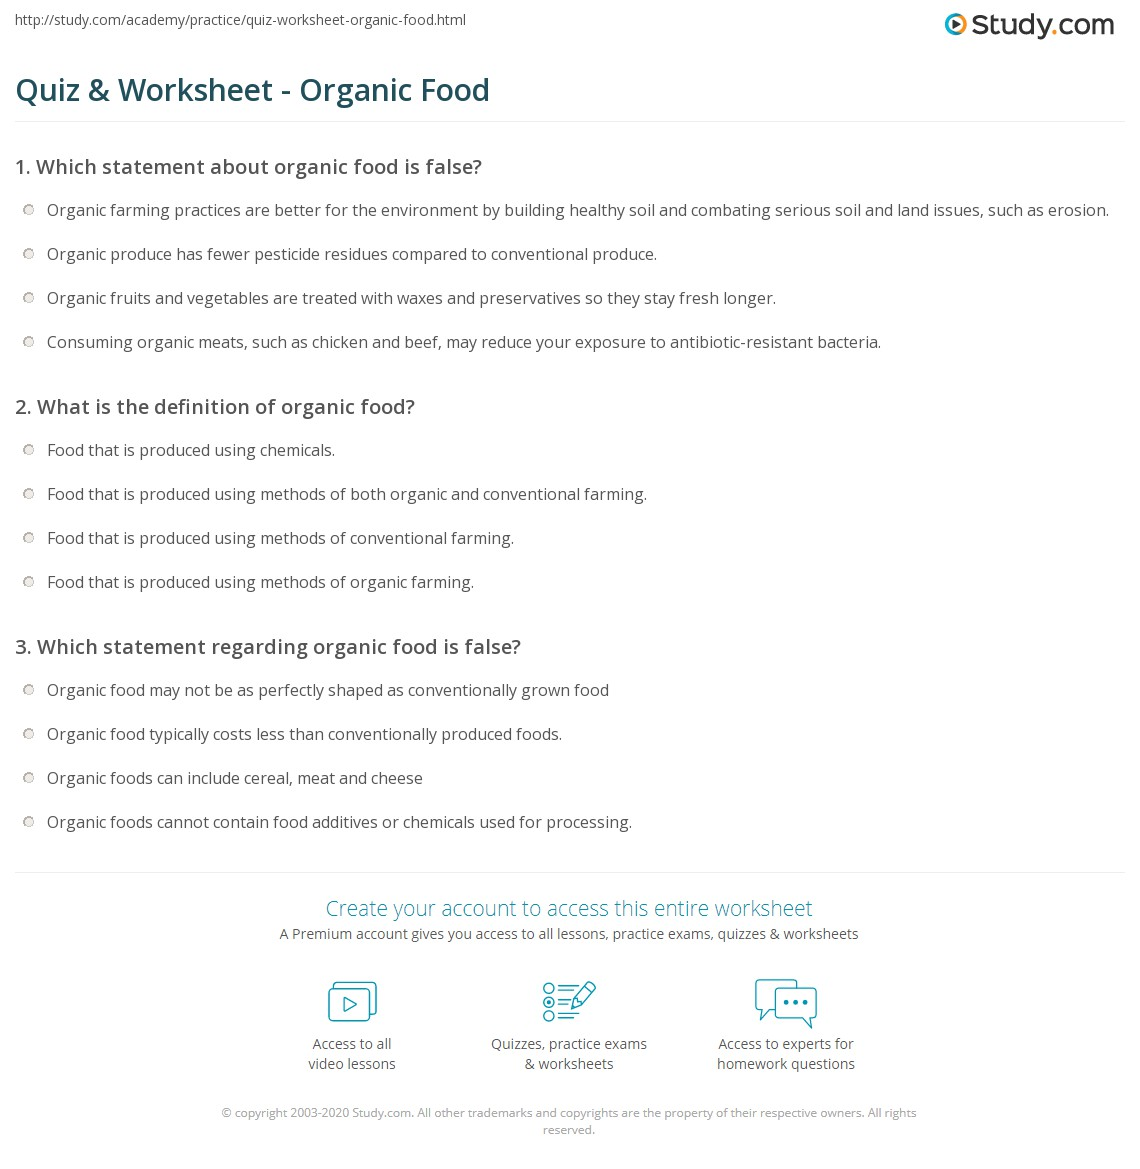 quiz & worksheet - organic food | study